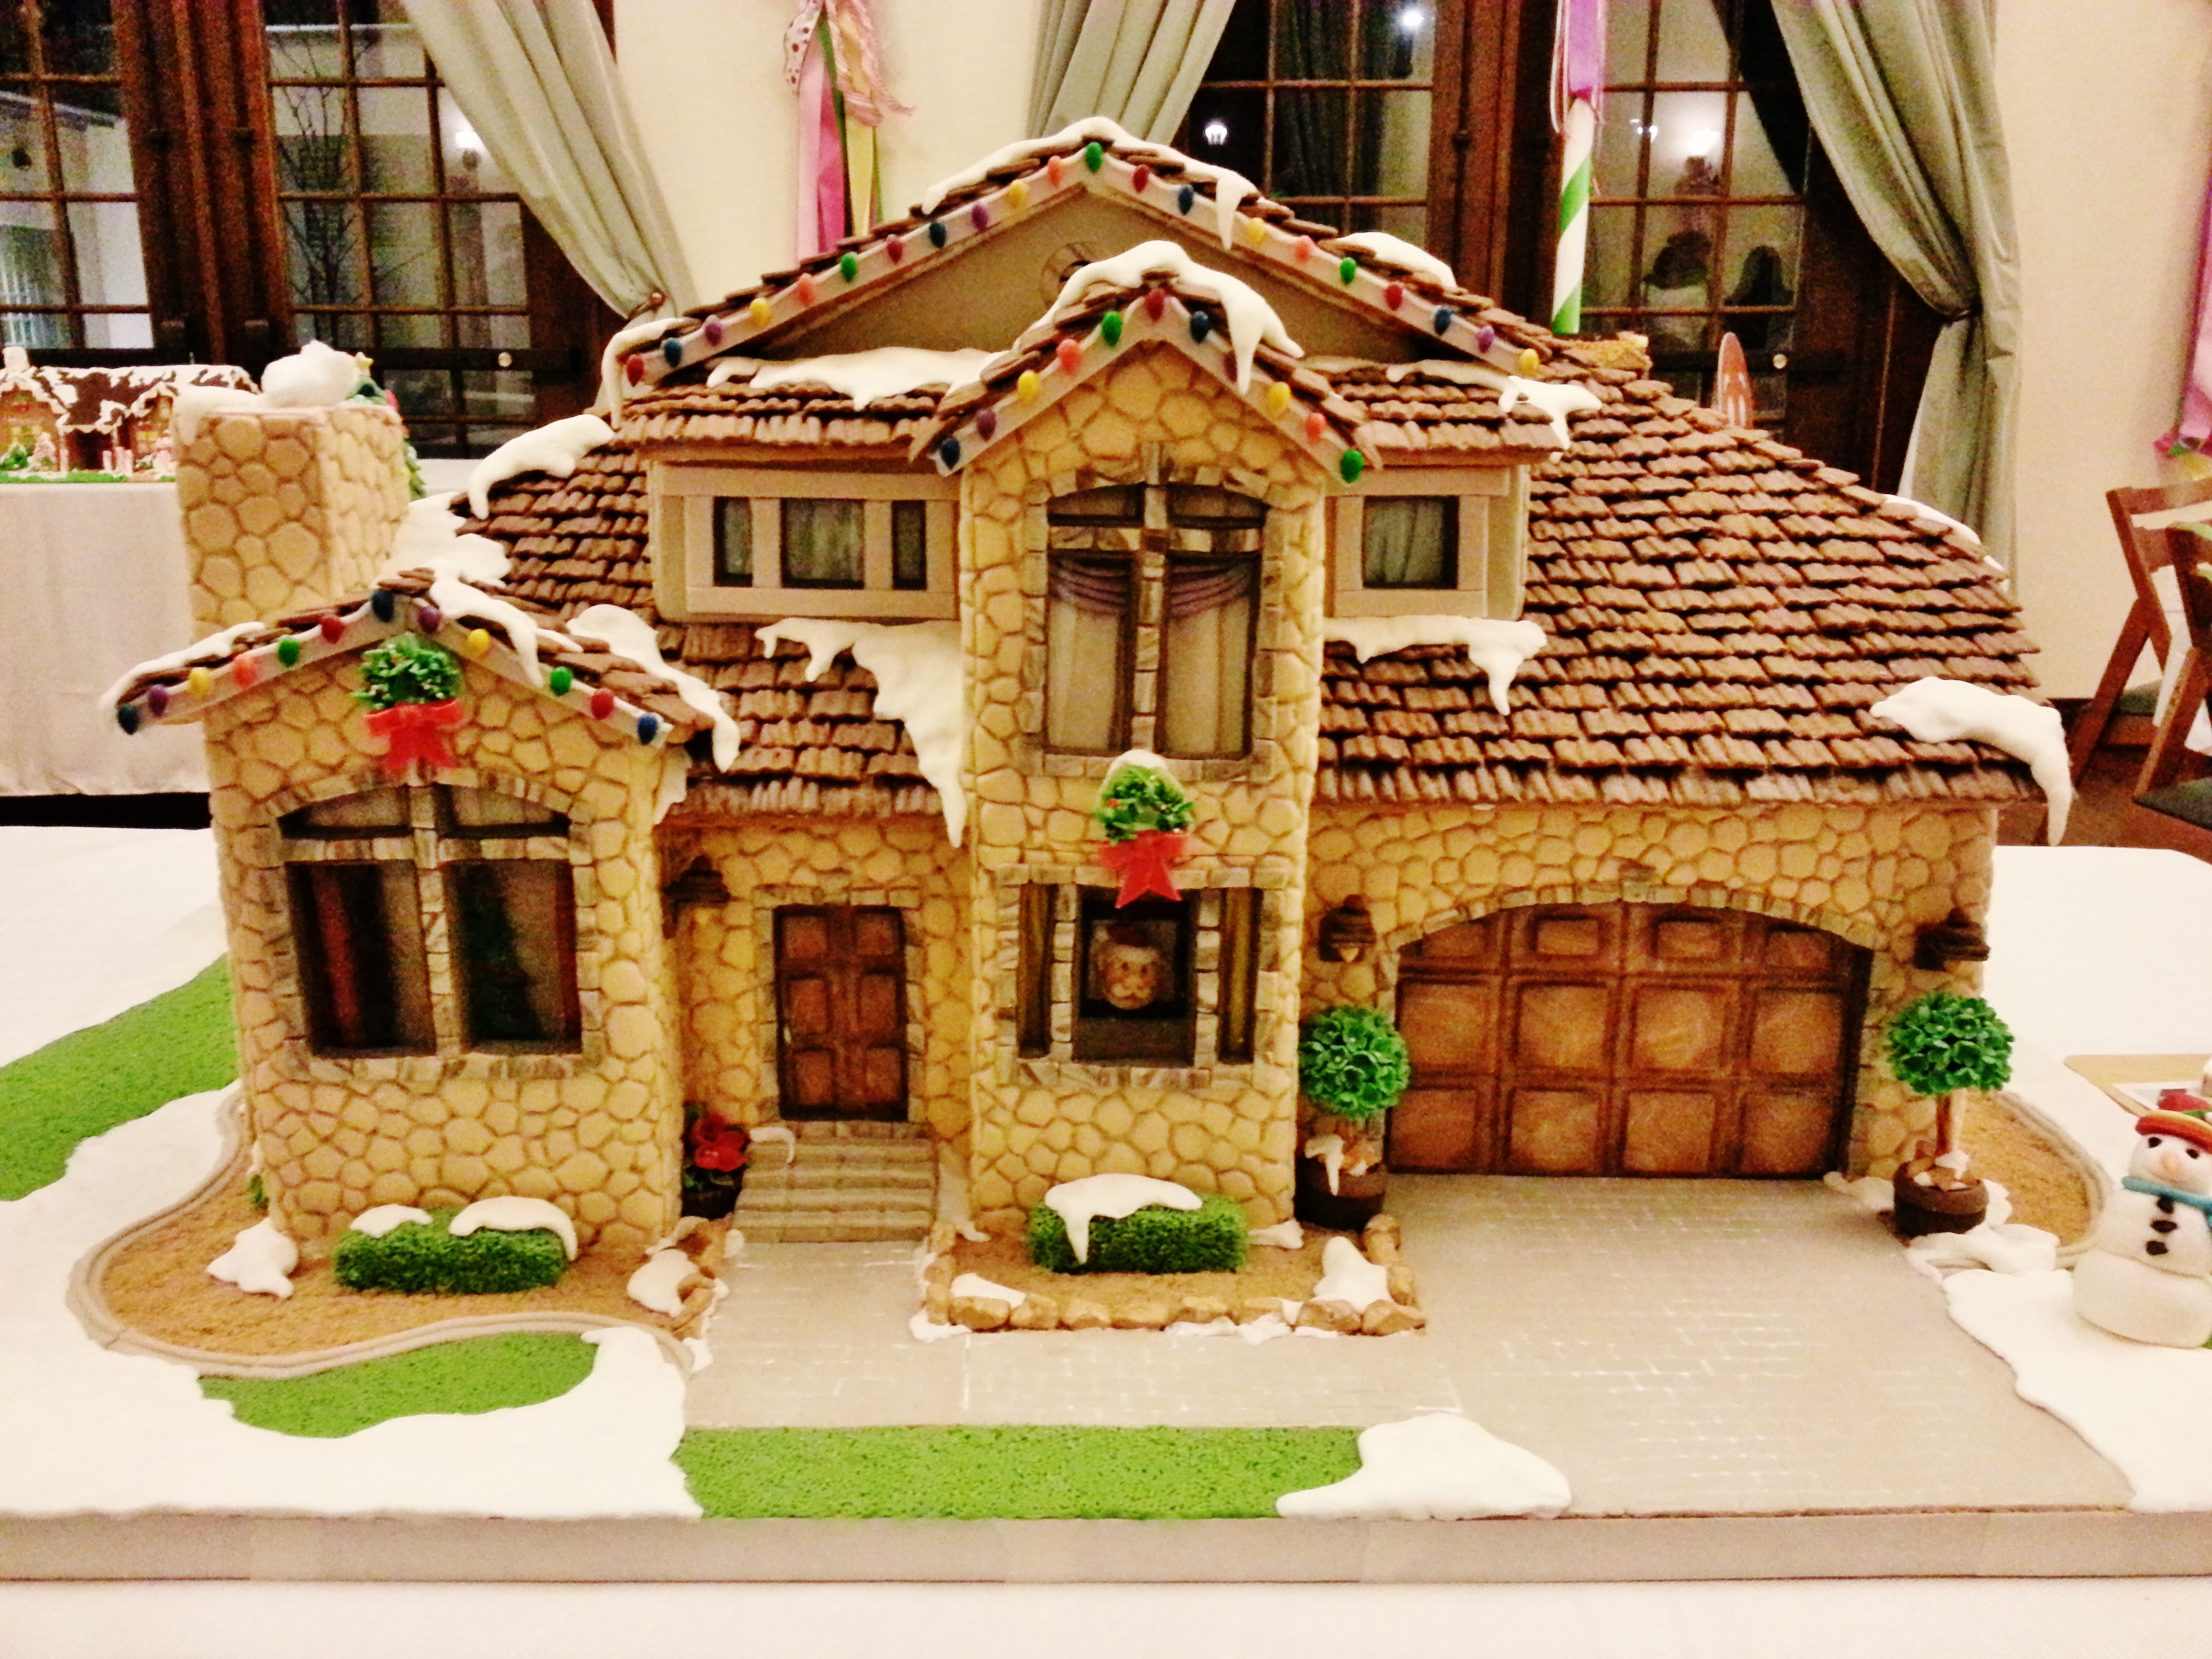 12 Best Gingerbread Houses & Castles for the Holidays - CandyStore.com